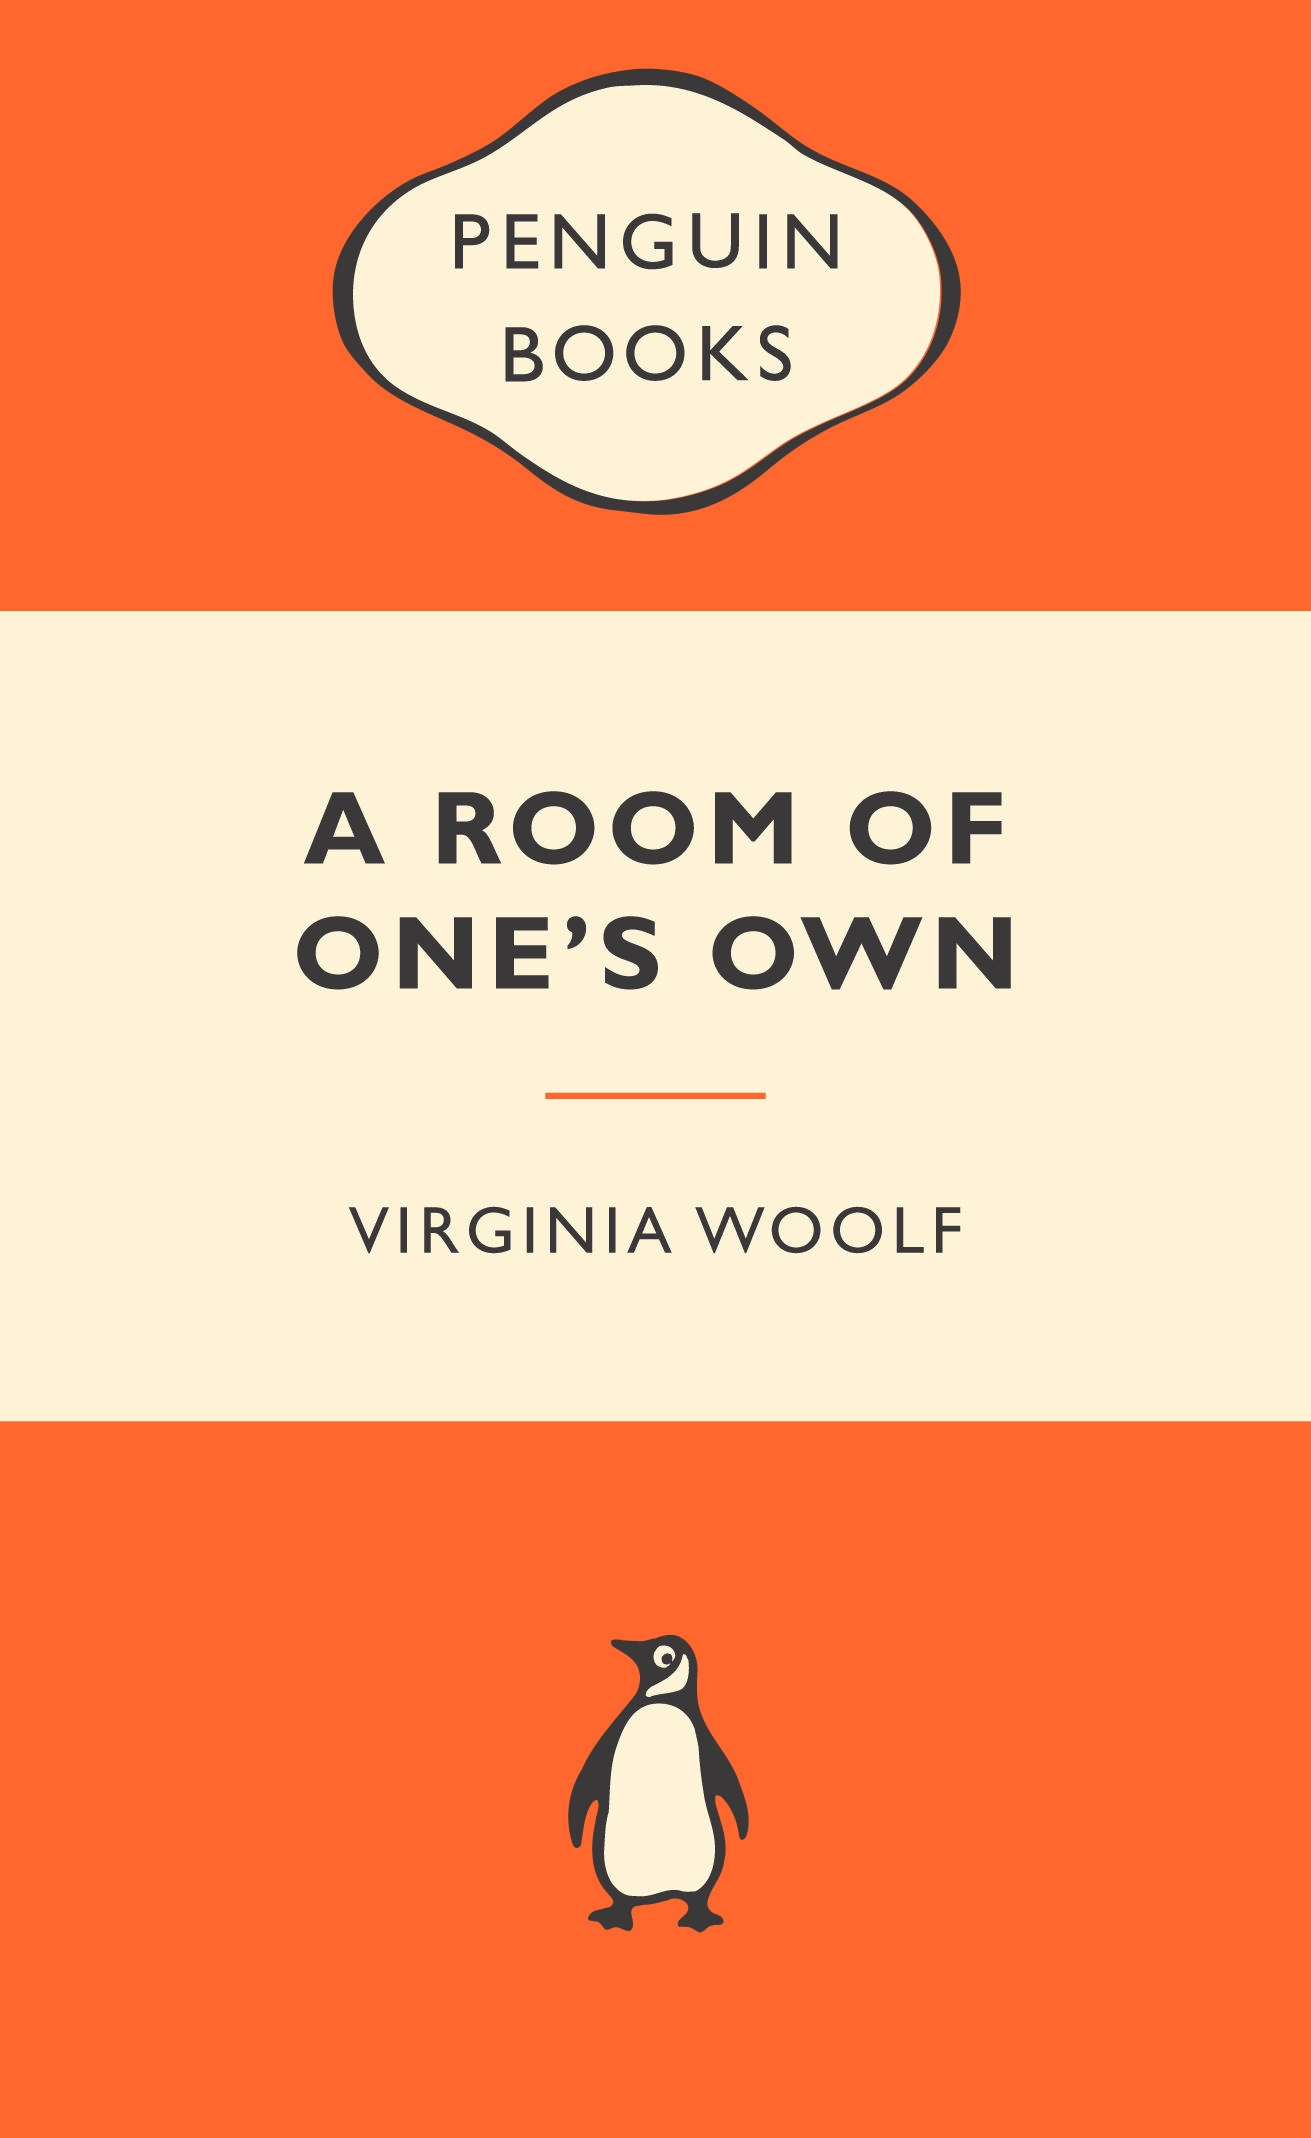 A Room of One's Own: Popular Penguins by Virginia Woolf, ISBN: 9780141044880